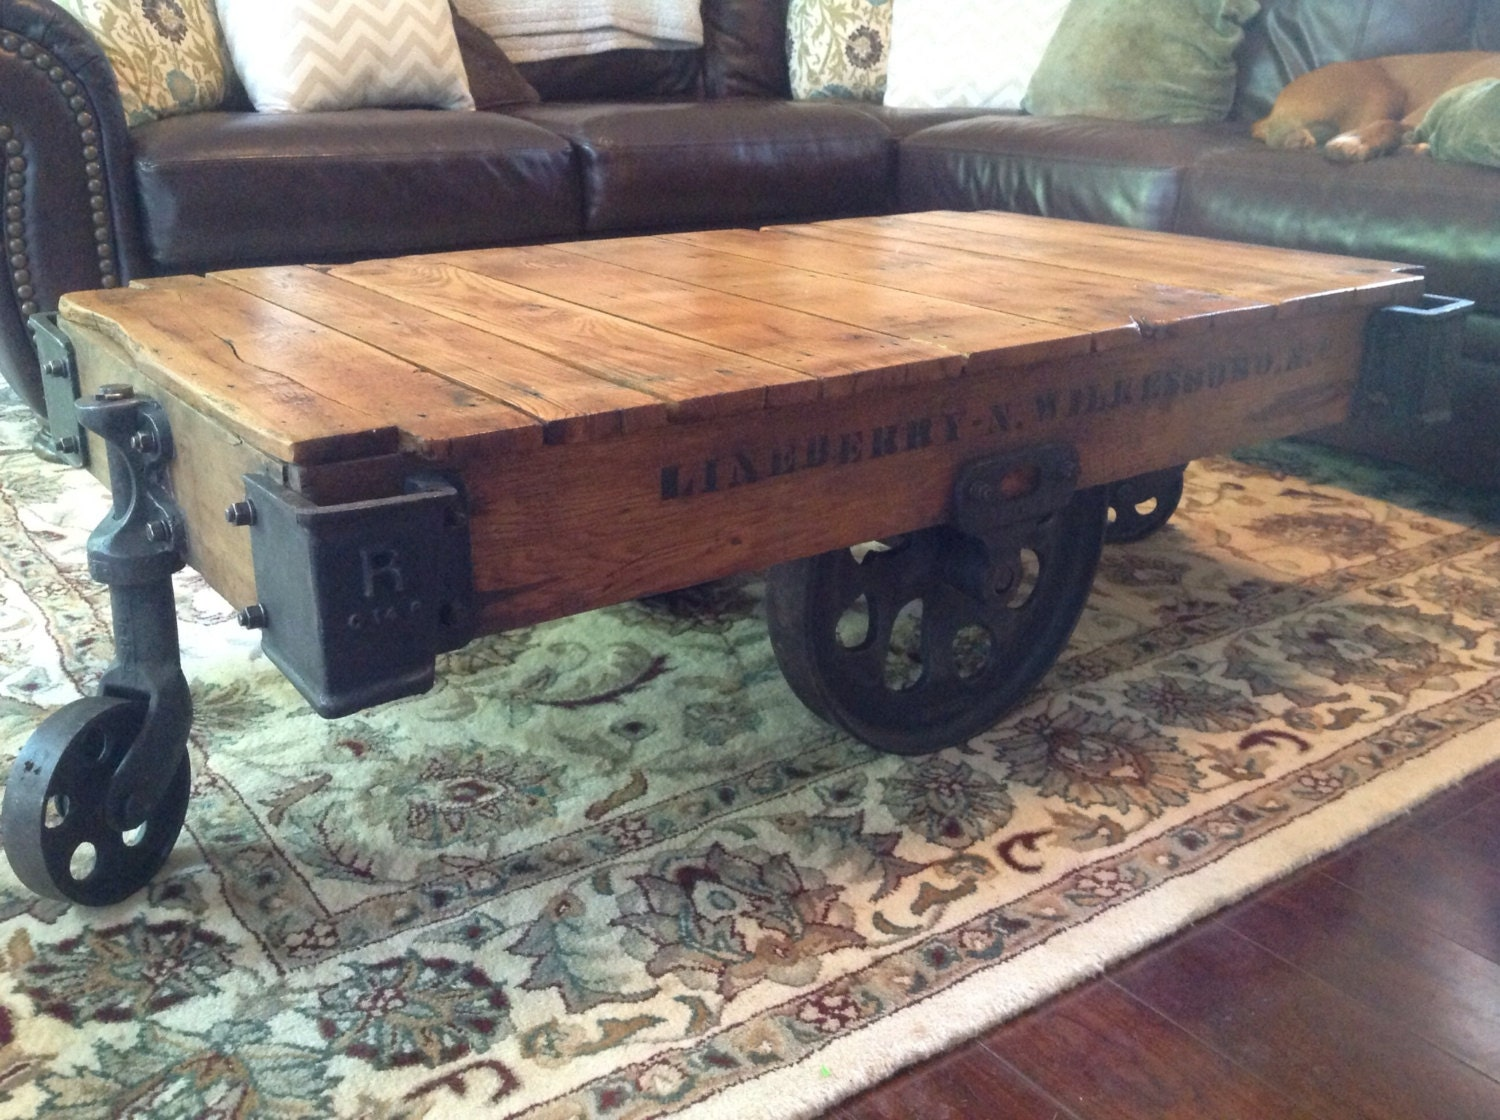 Fully Restored Vintage Industrial Lineberry Factory Cart Coffee Table - VintageHouseCreation